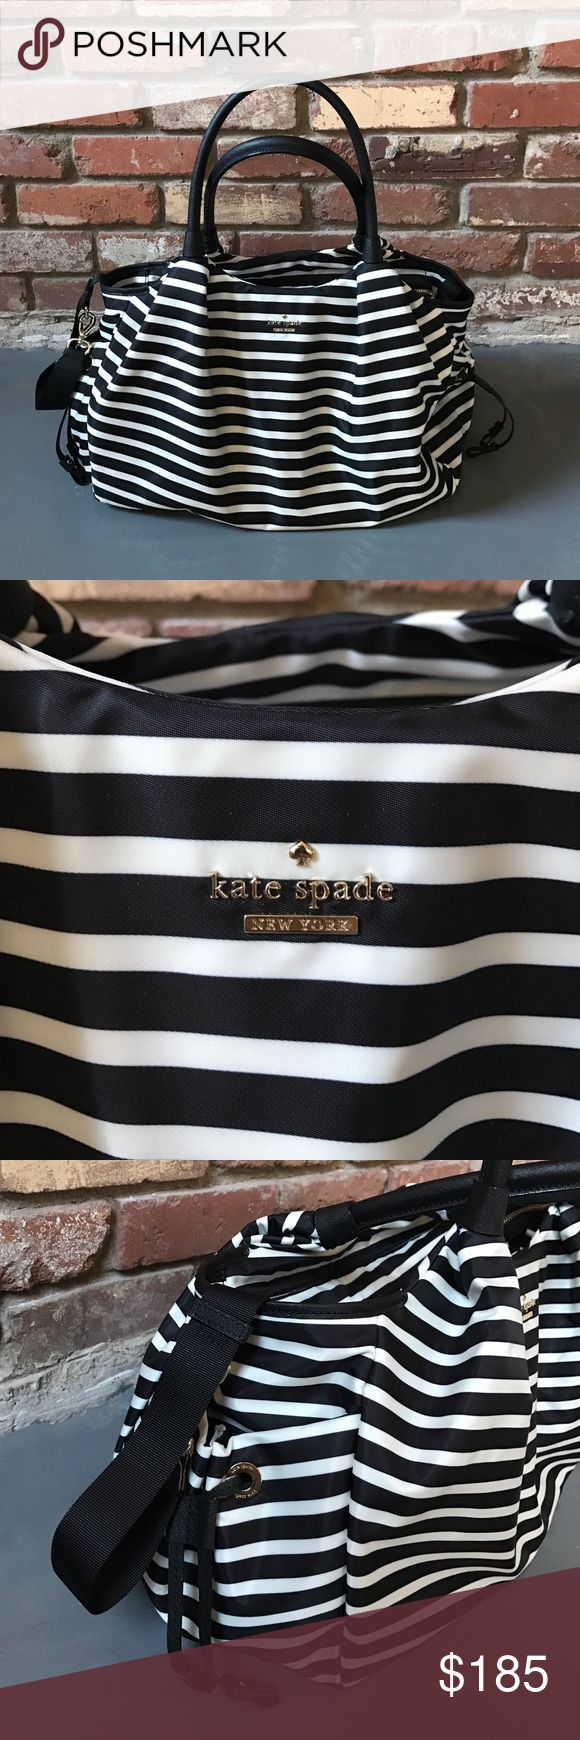 Kate Spade classic nylon diaper bag Gorgeous black and white striped, Kate spade bag. Only used a handful of times. In great condition!! kate spade Bags Baby Bags